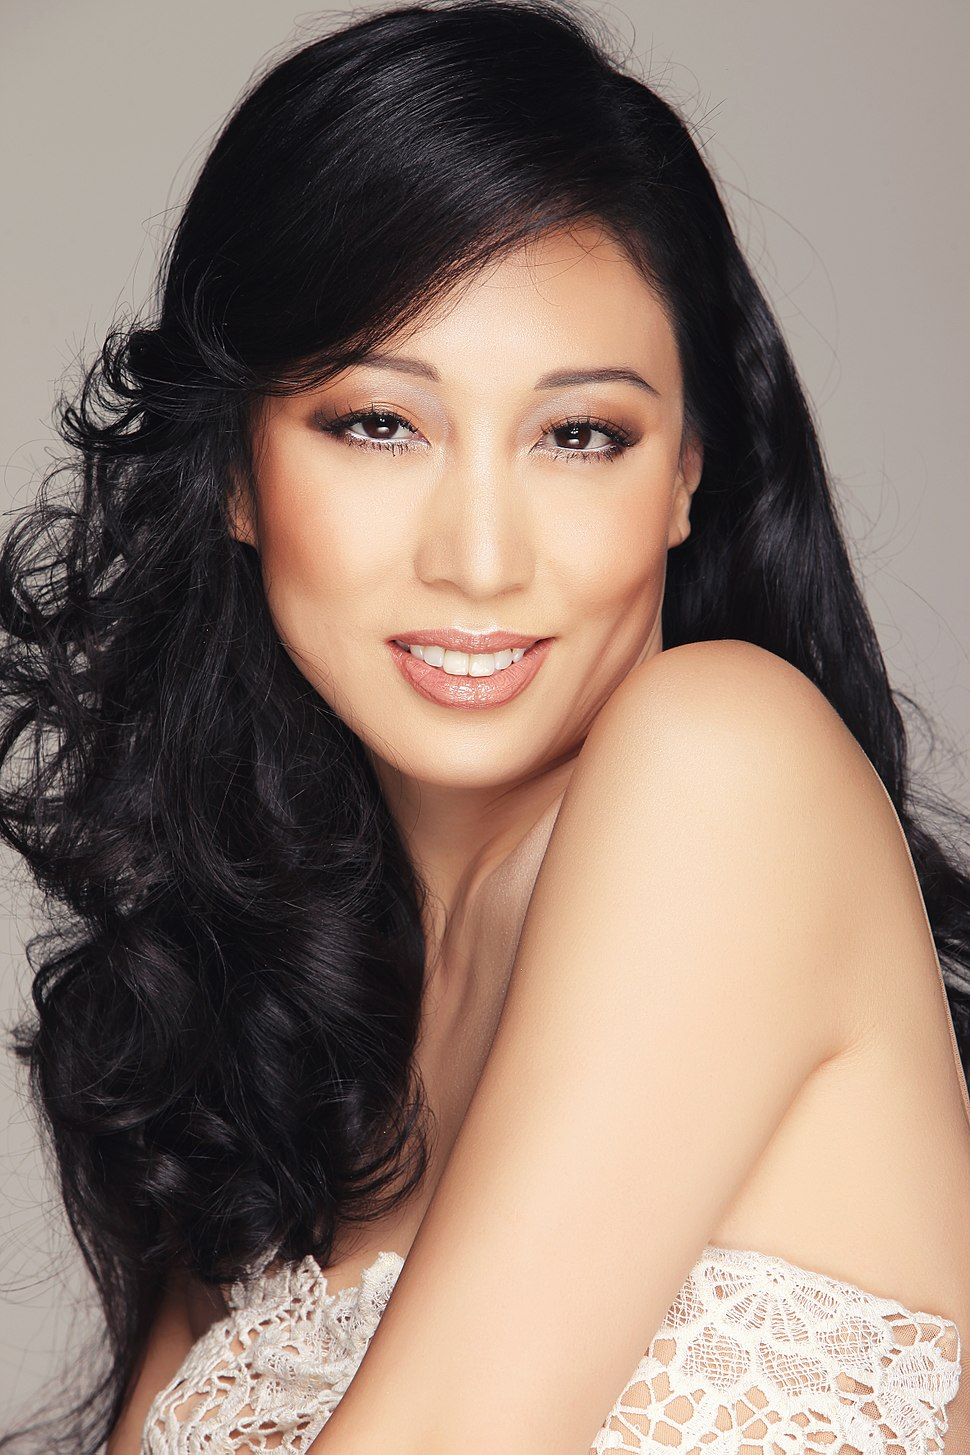 Judy Joo, Chef, Writer and TV Personality